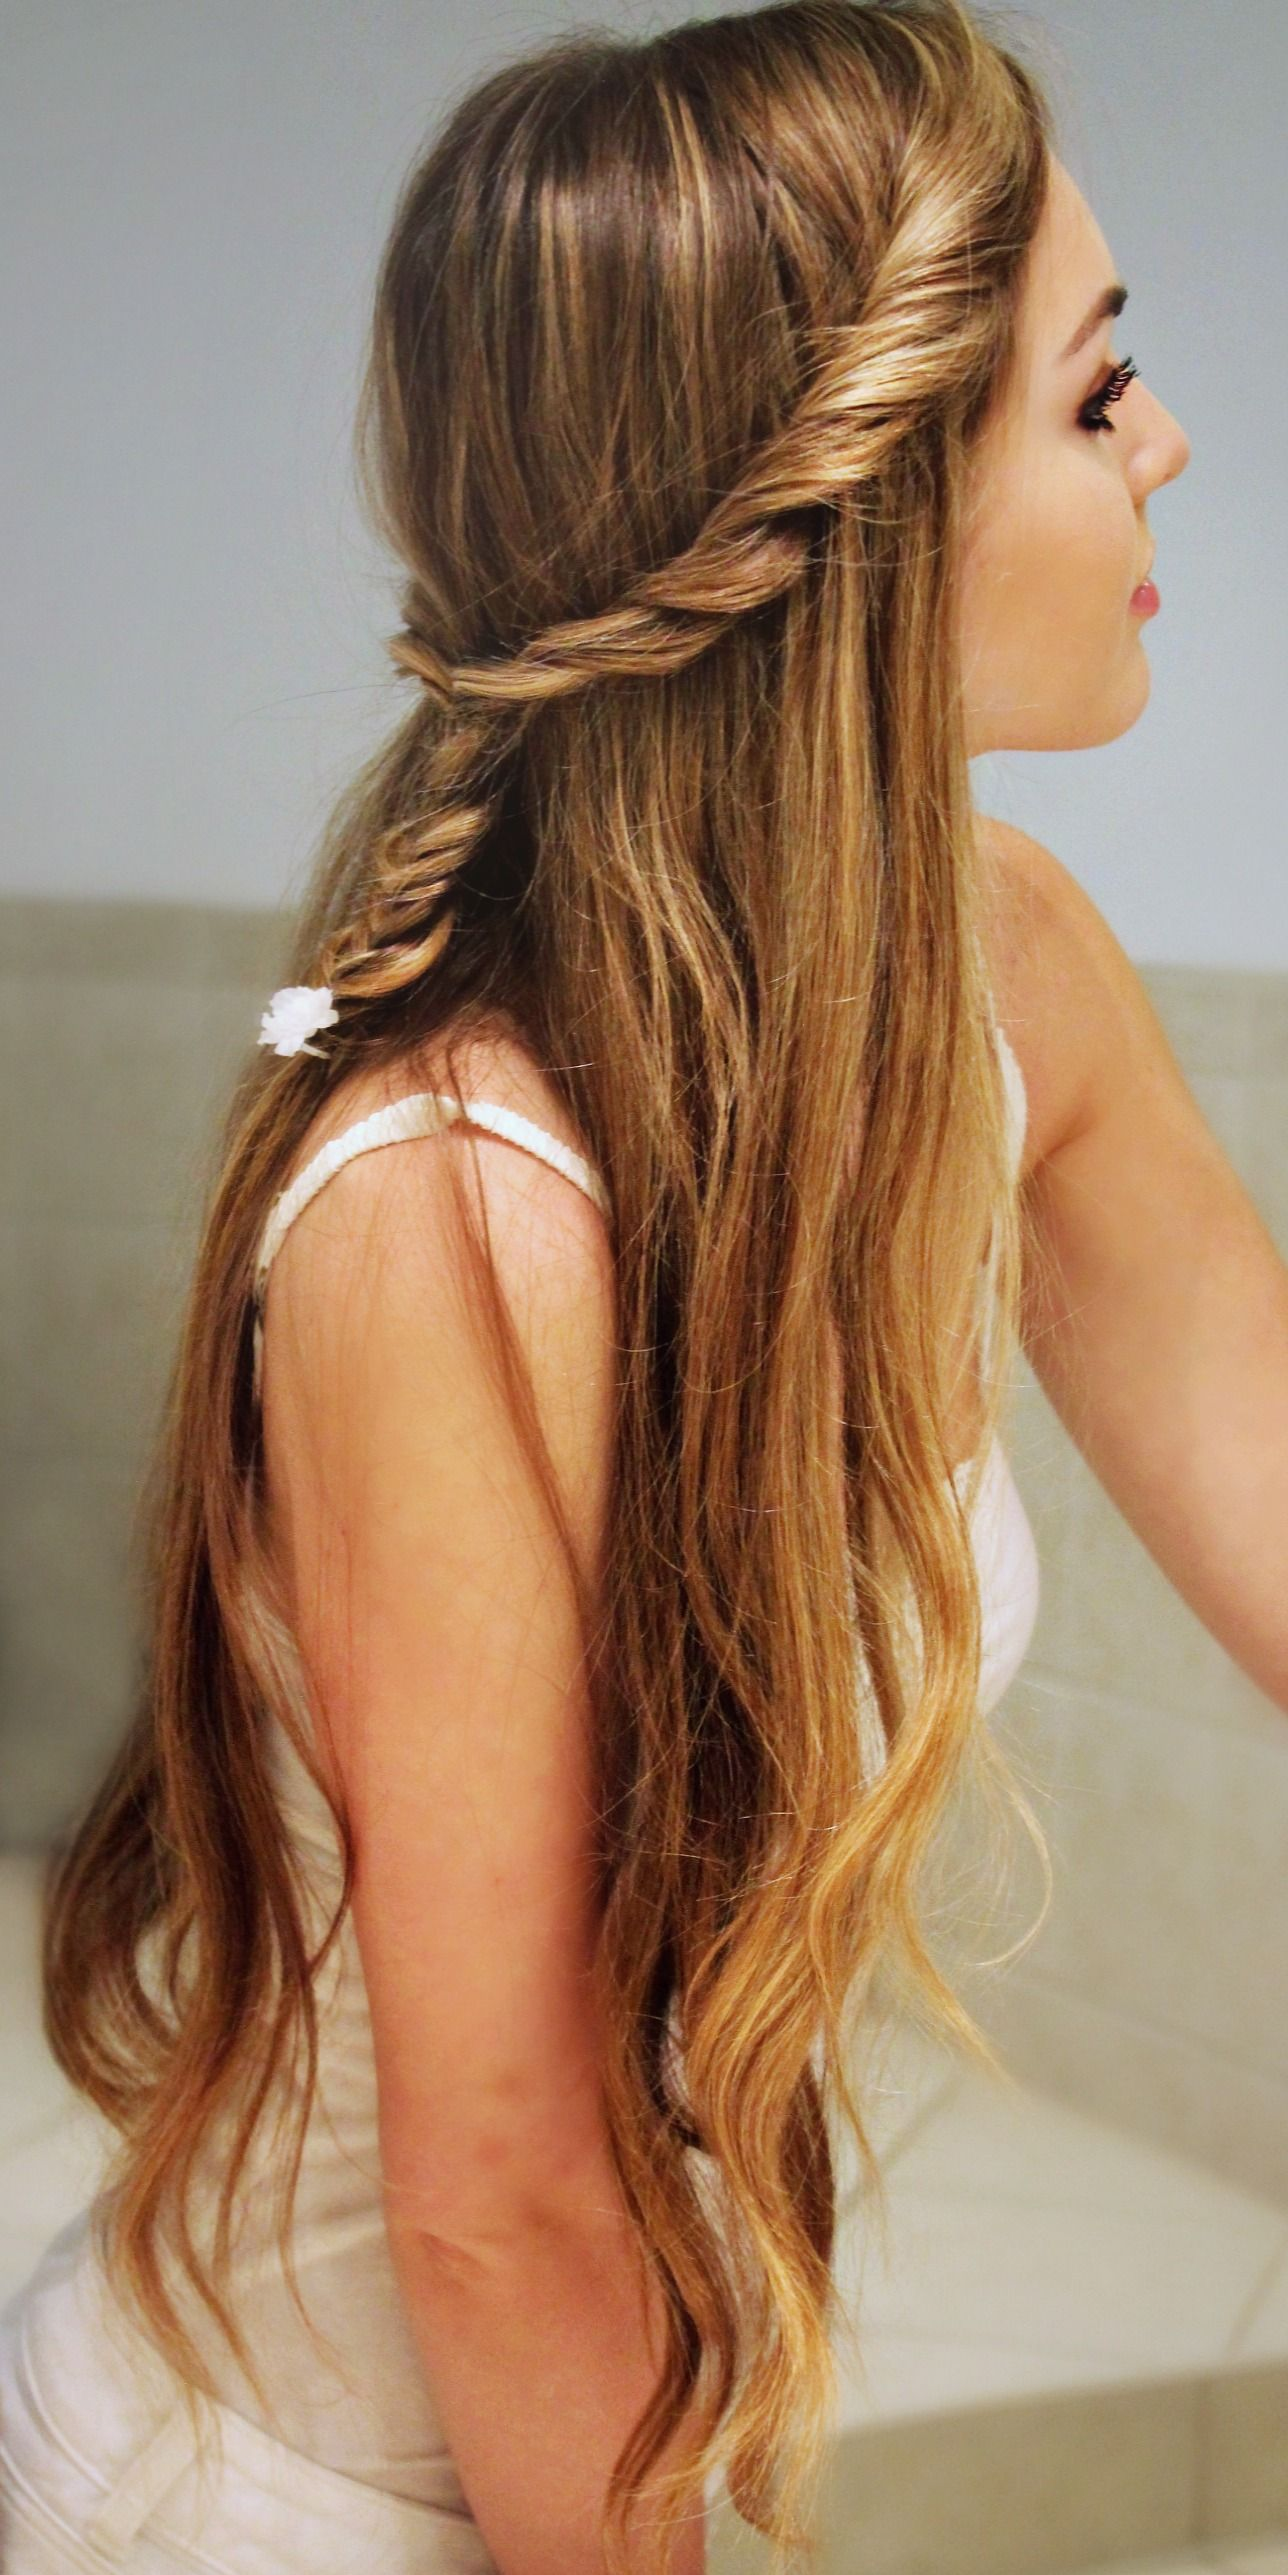 Cute backtoschool hairstyles for girls hair and makeup